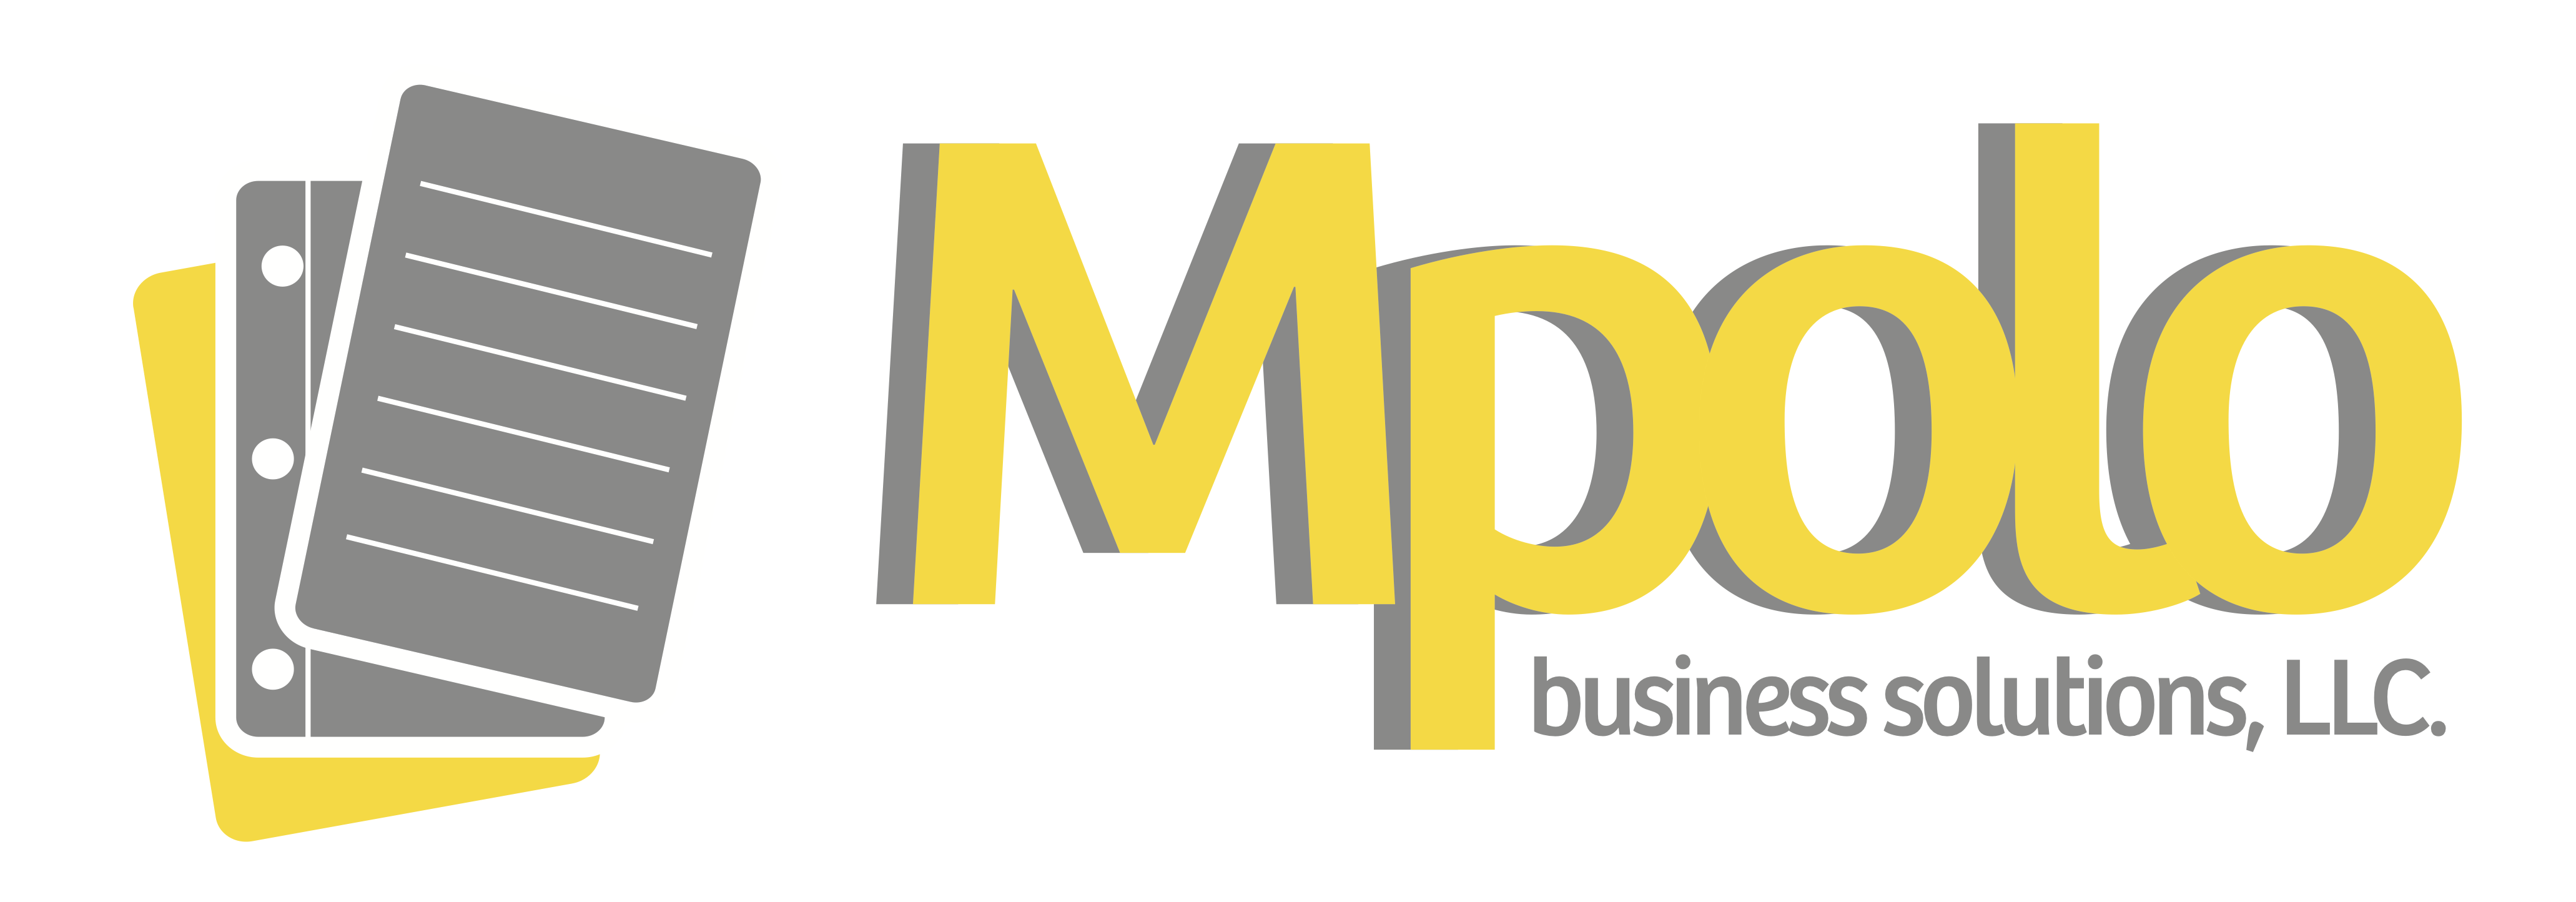 Mpolo Business Solutions